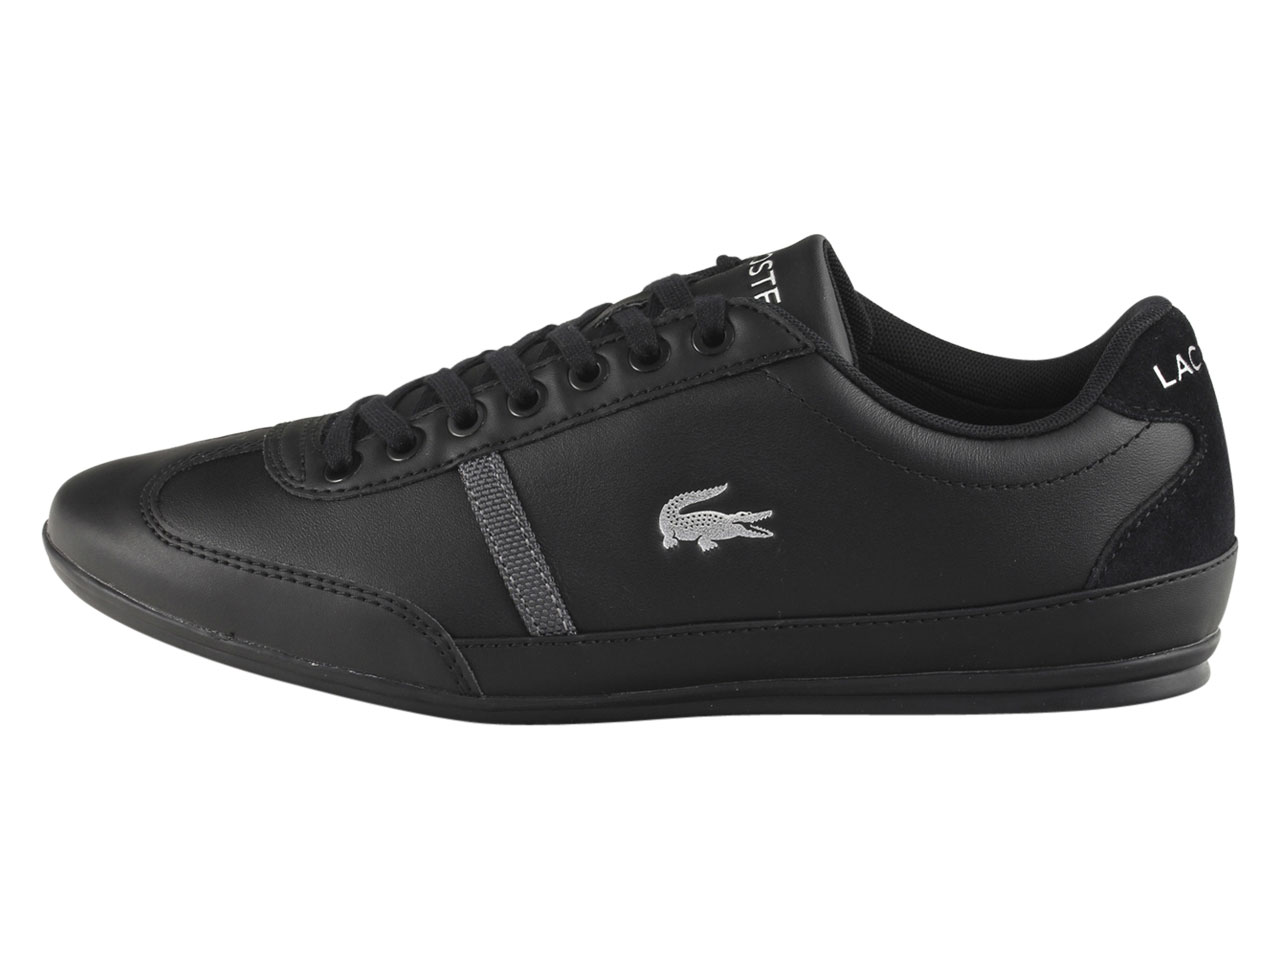 Lacoste-Men-039-s-Misano-Sport-118-Sneakers-Shoes thumbnail 10